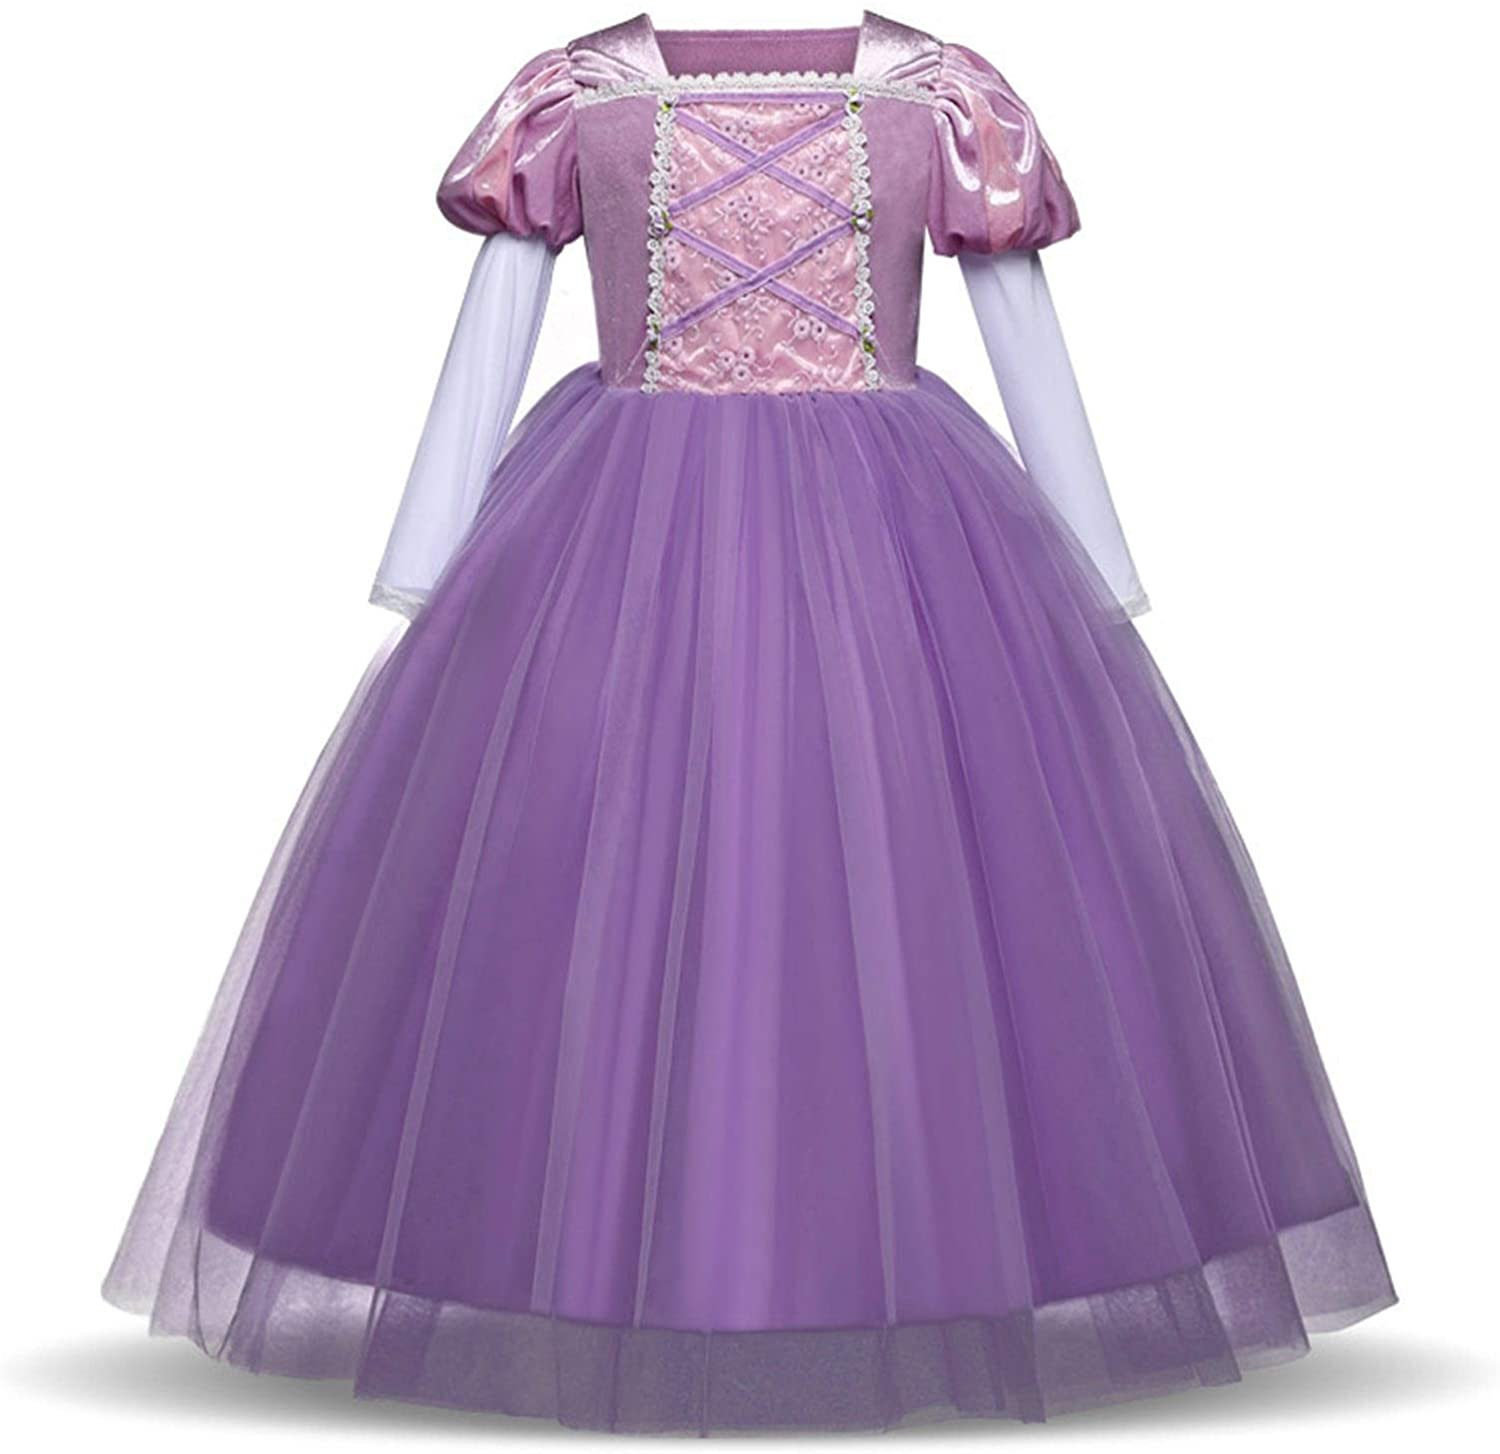 XYXINS Halloween Girl 4 10 Year Cosplay Clothes Party Dress Princess Snow White Dresses for Kids Girls Costume Autumn and Winter (Color : Purple, Kid Size : 4T)